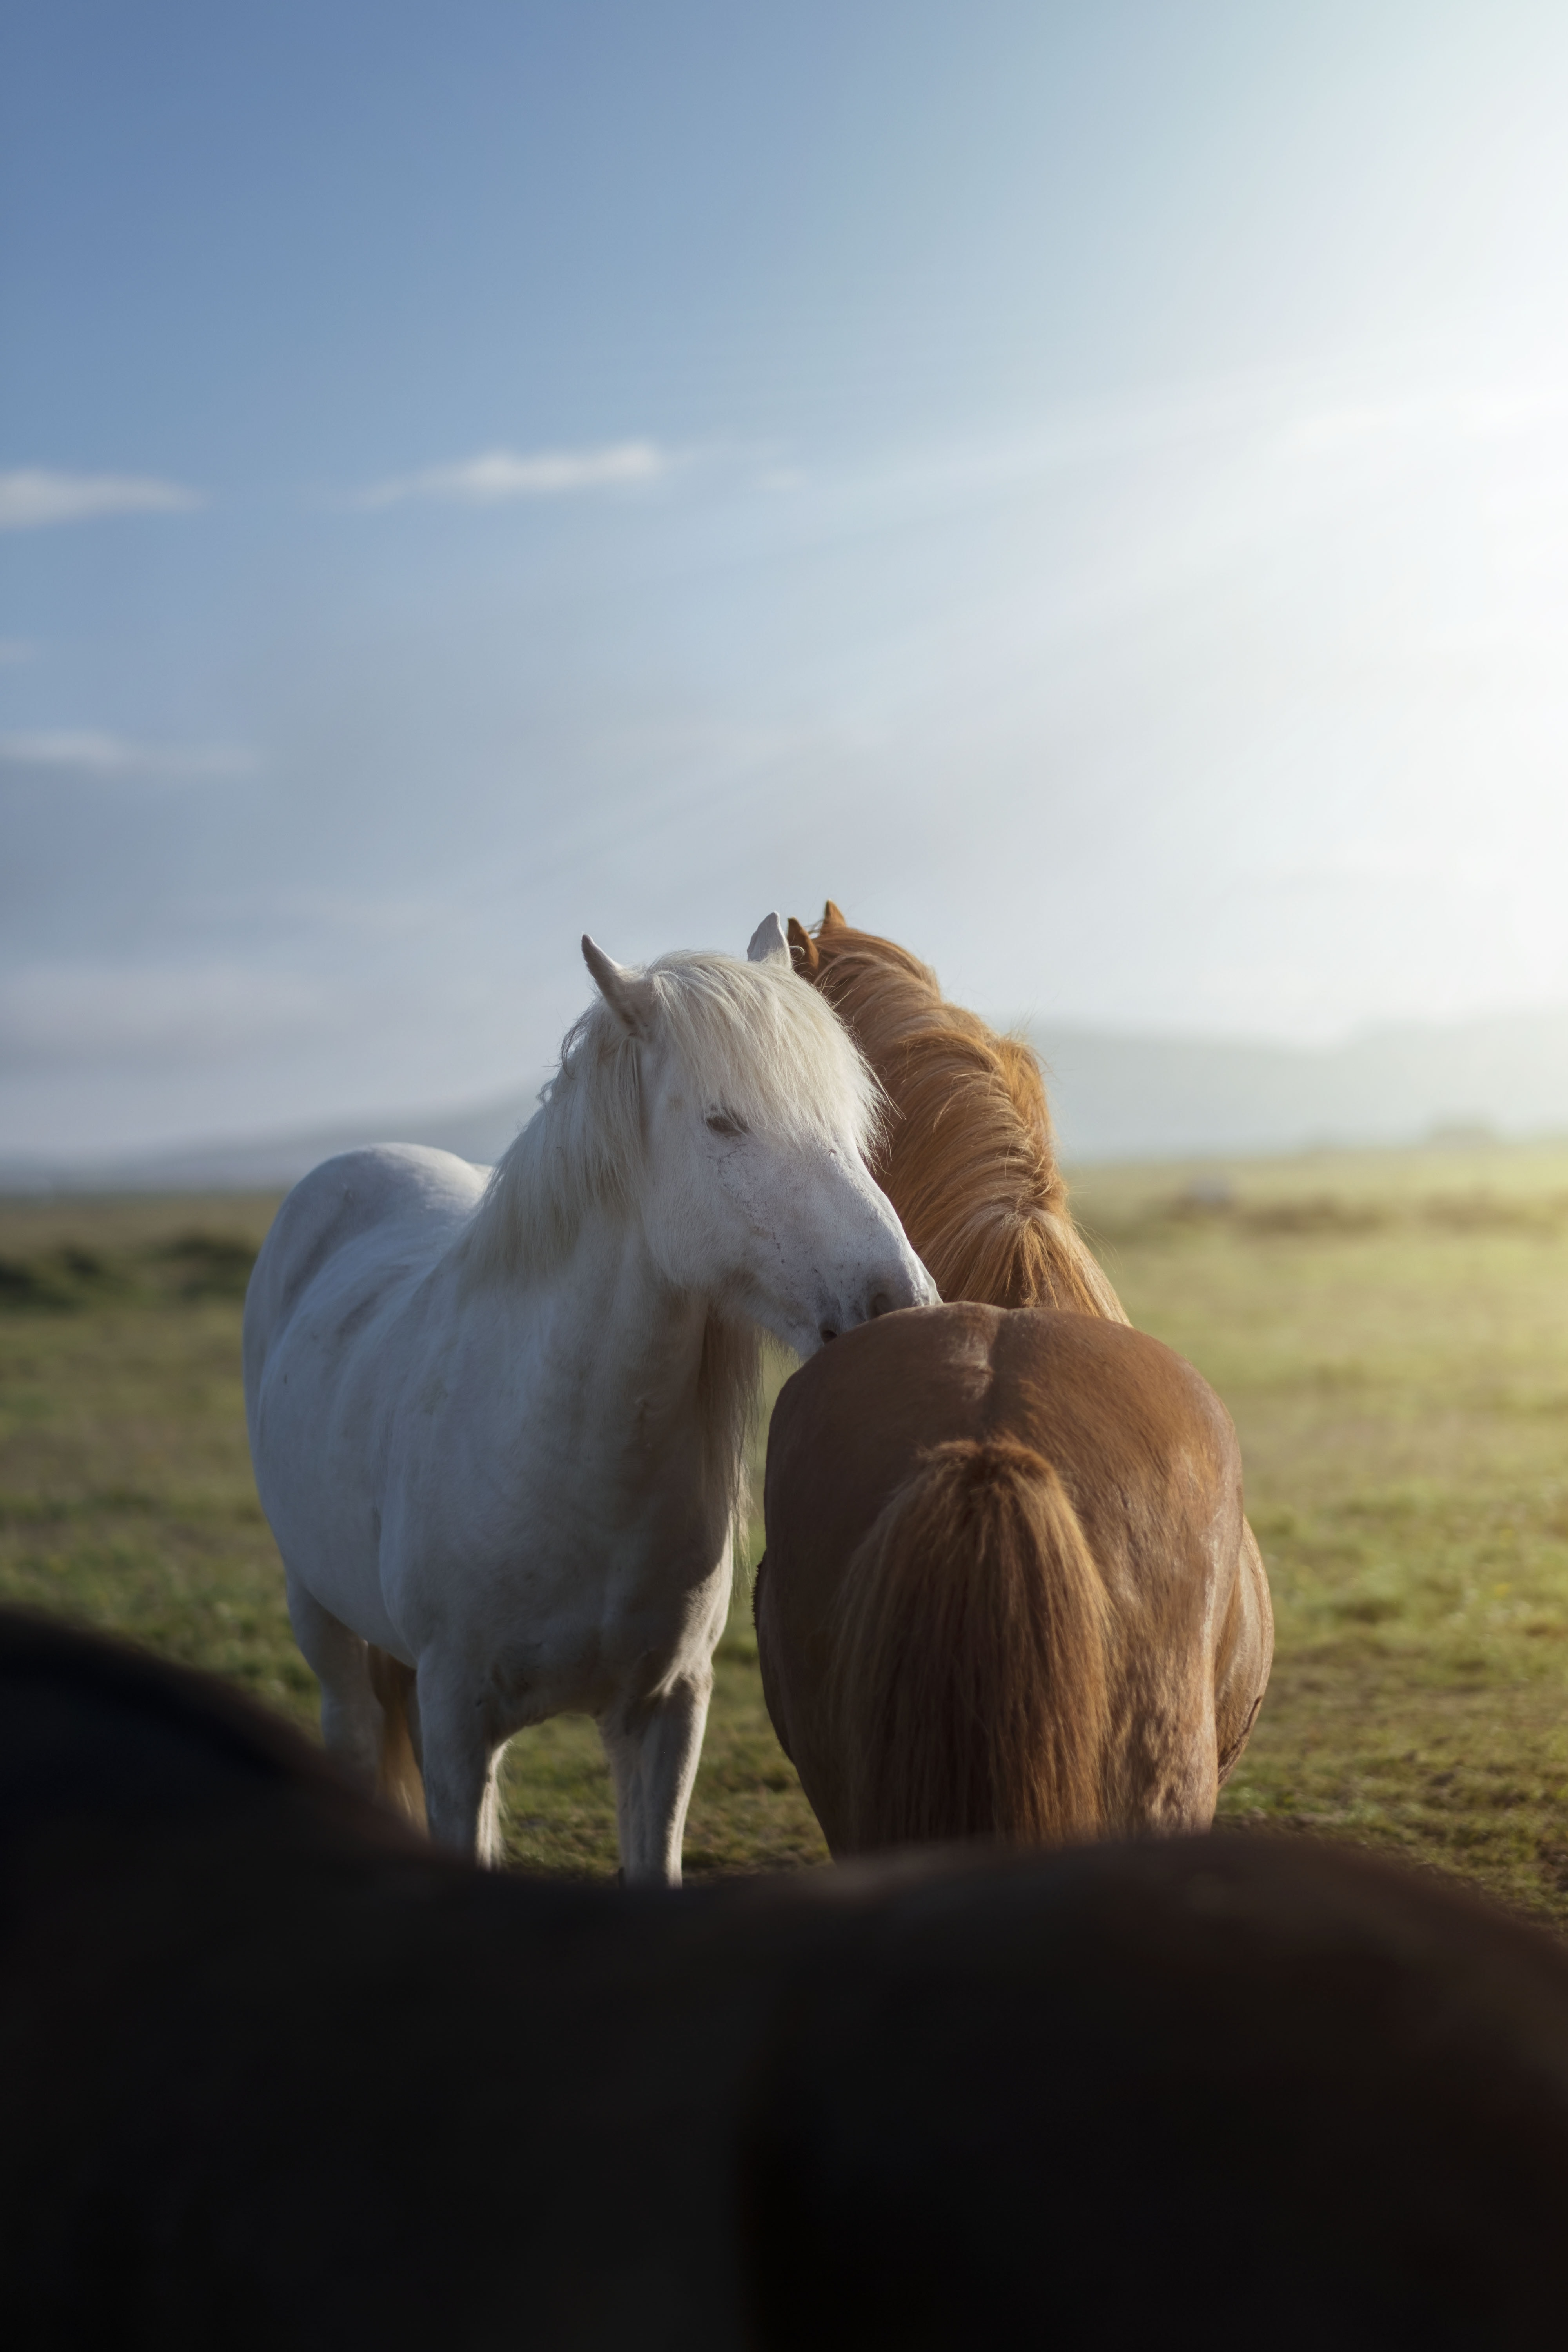 White Horse Pictures Download Free Images On Unsplash